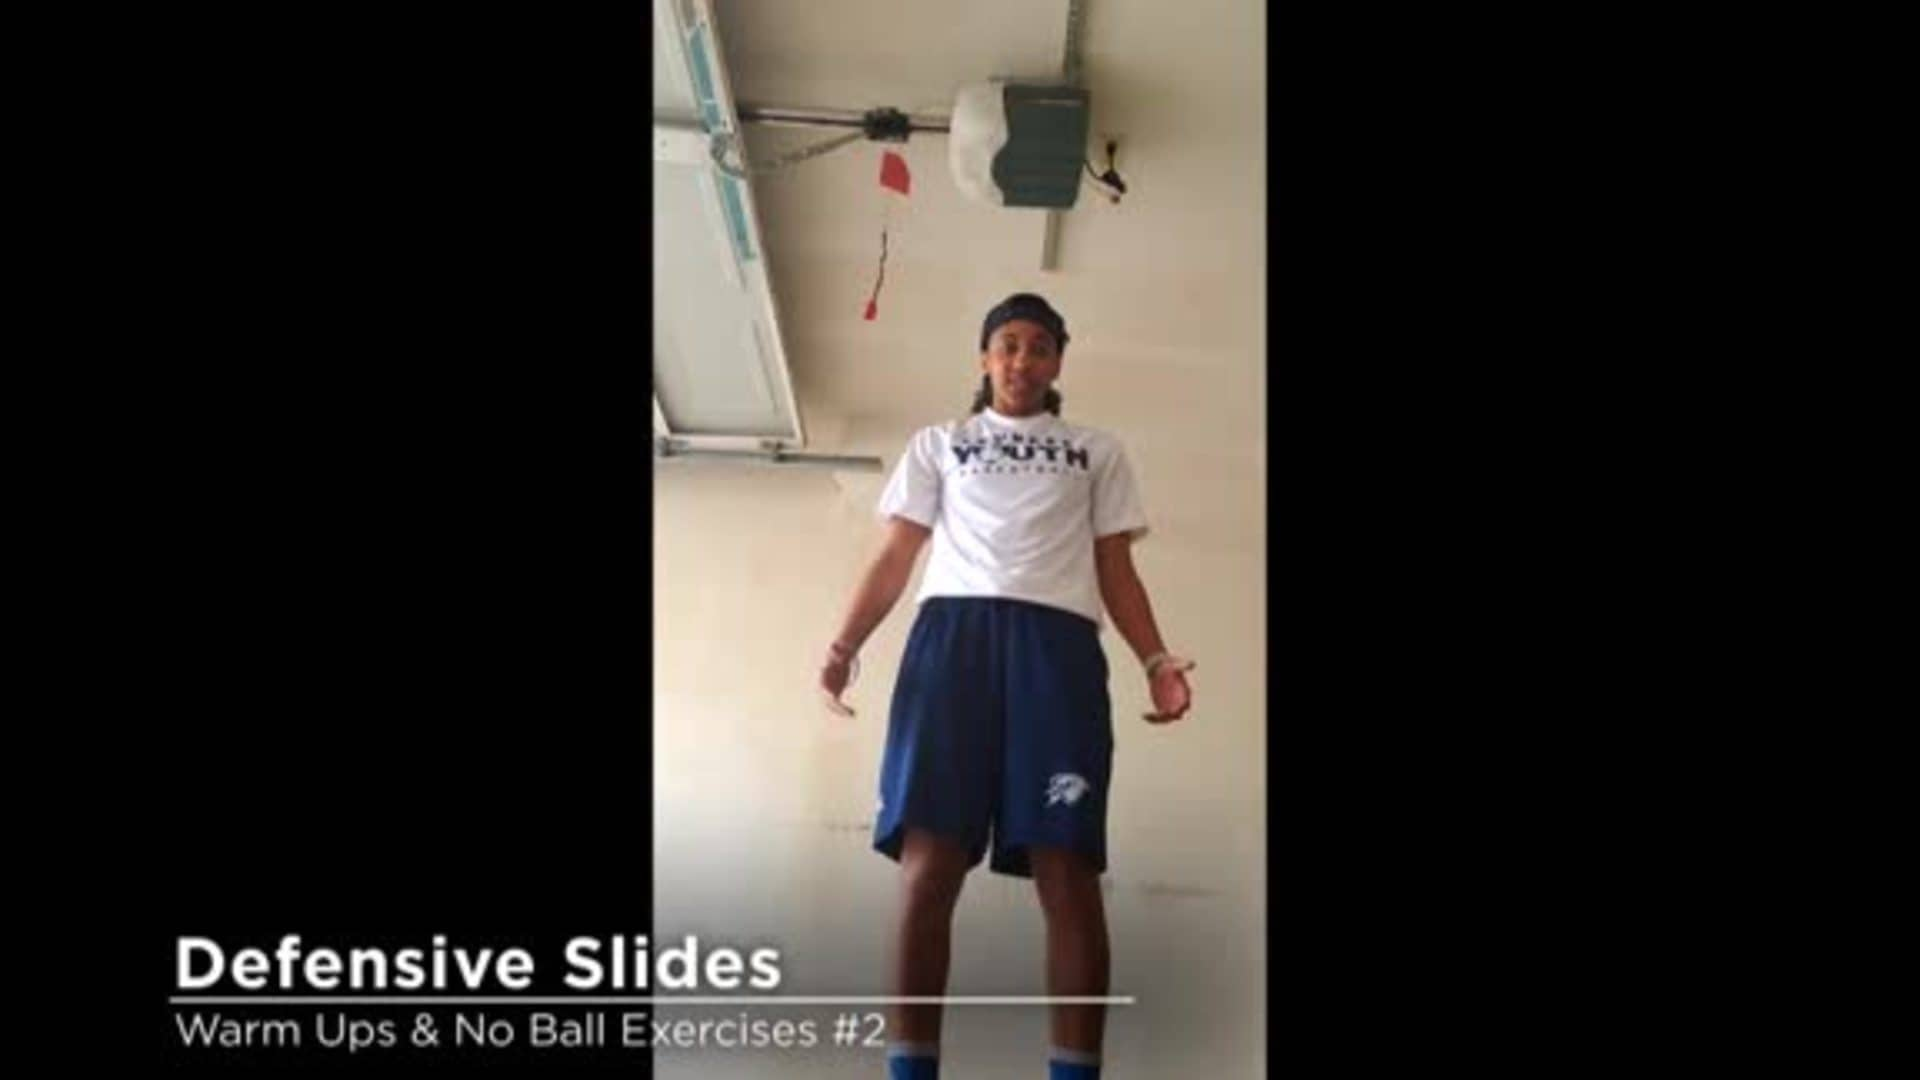 Skills Challenge: Defensive Slides